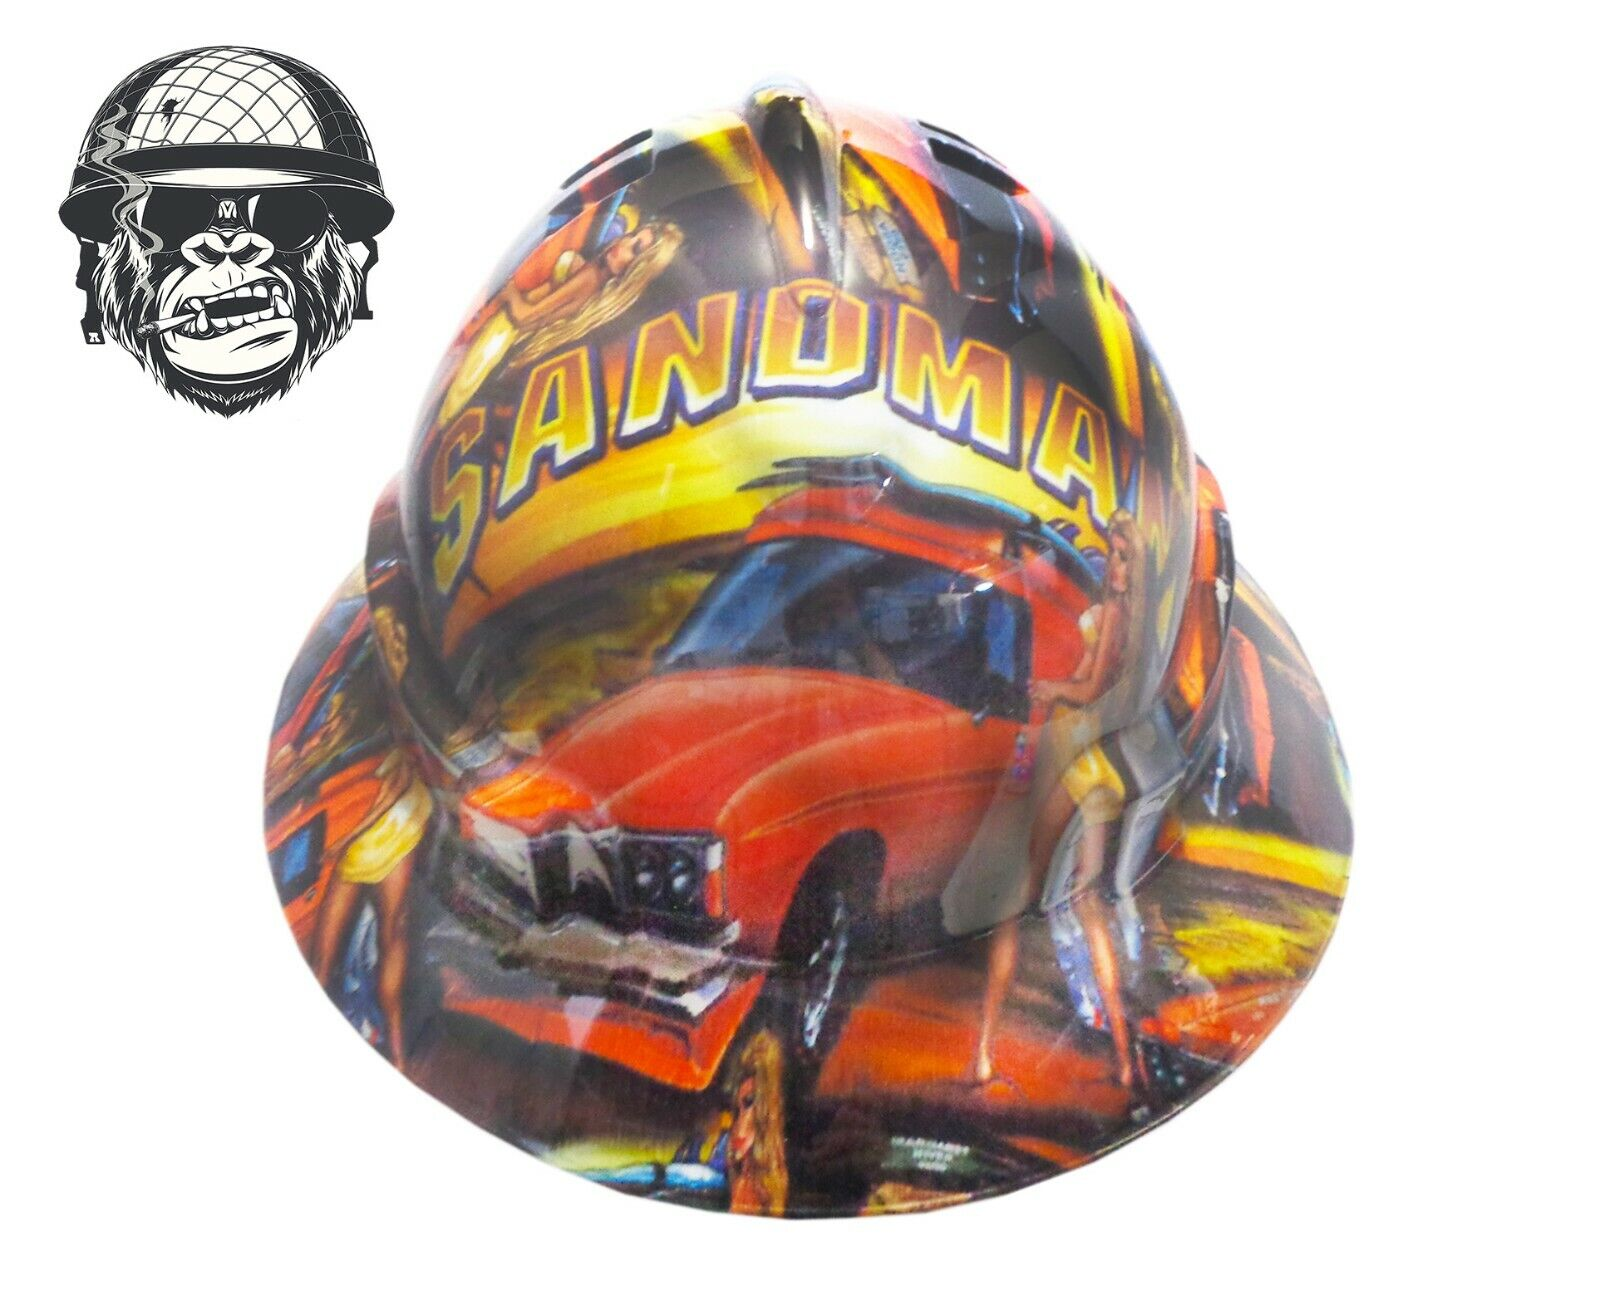 Custom Hydrographic Safety Hard Hat Mining Industrial Panelvan SANDMAN WIDE